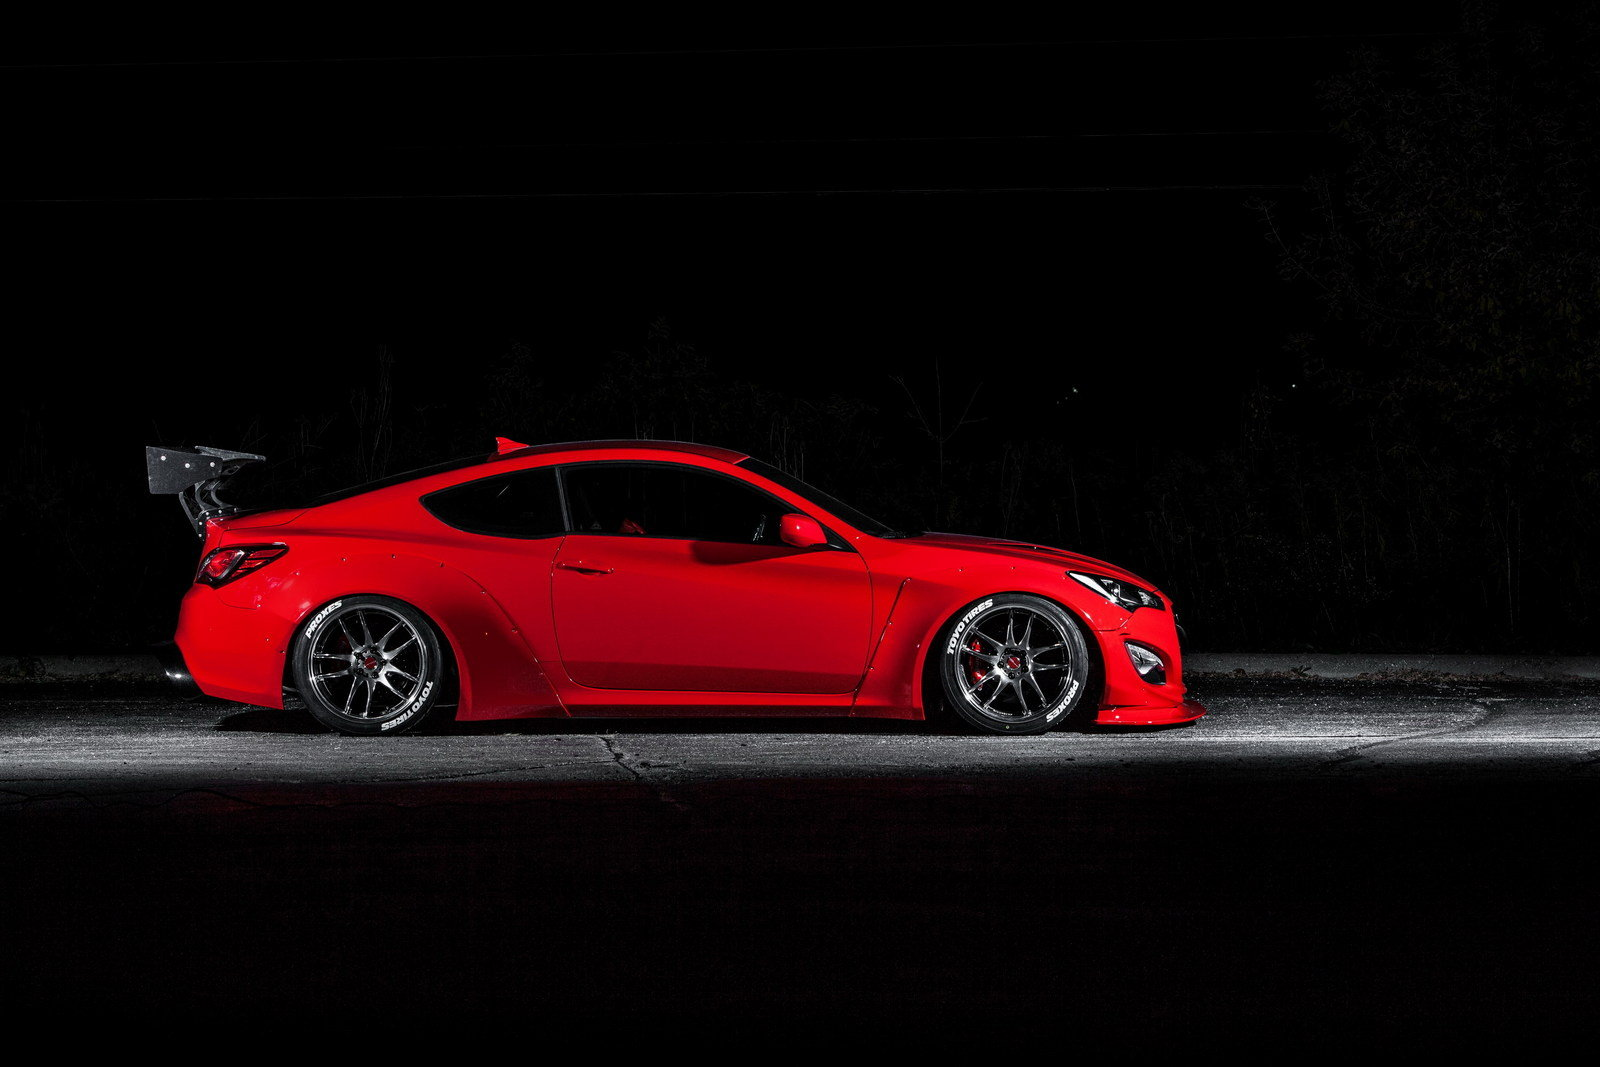 2015 Hyundai Genesis Coupe By Blood Type Racing Picture